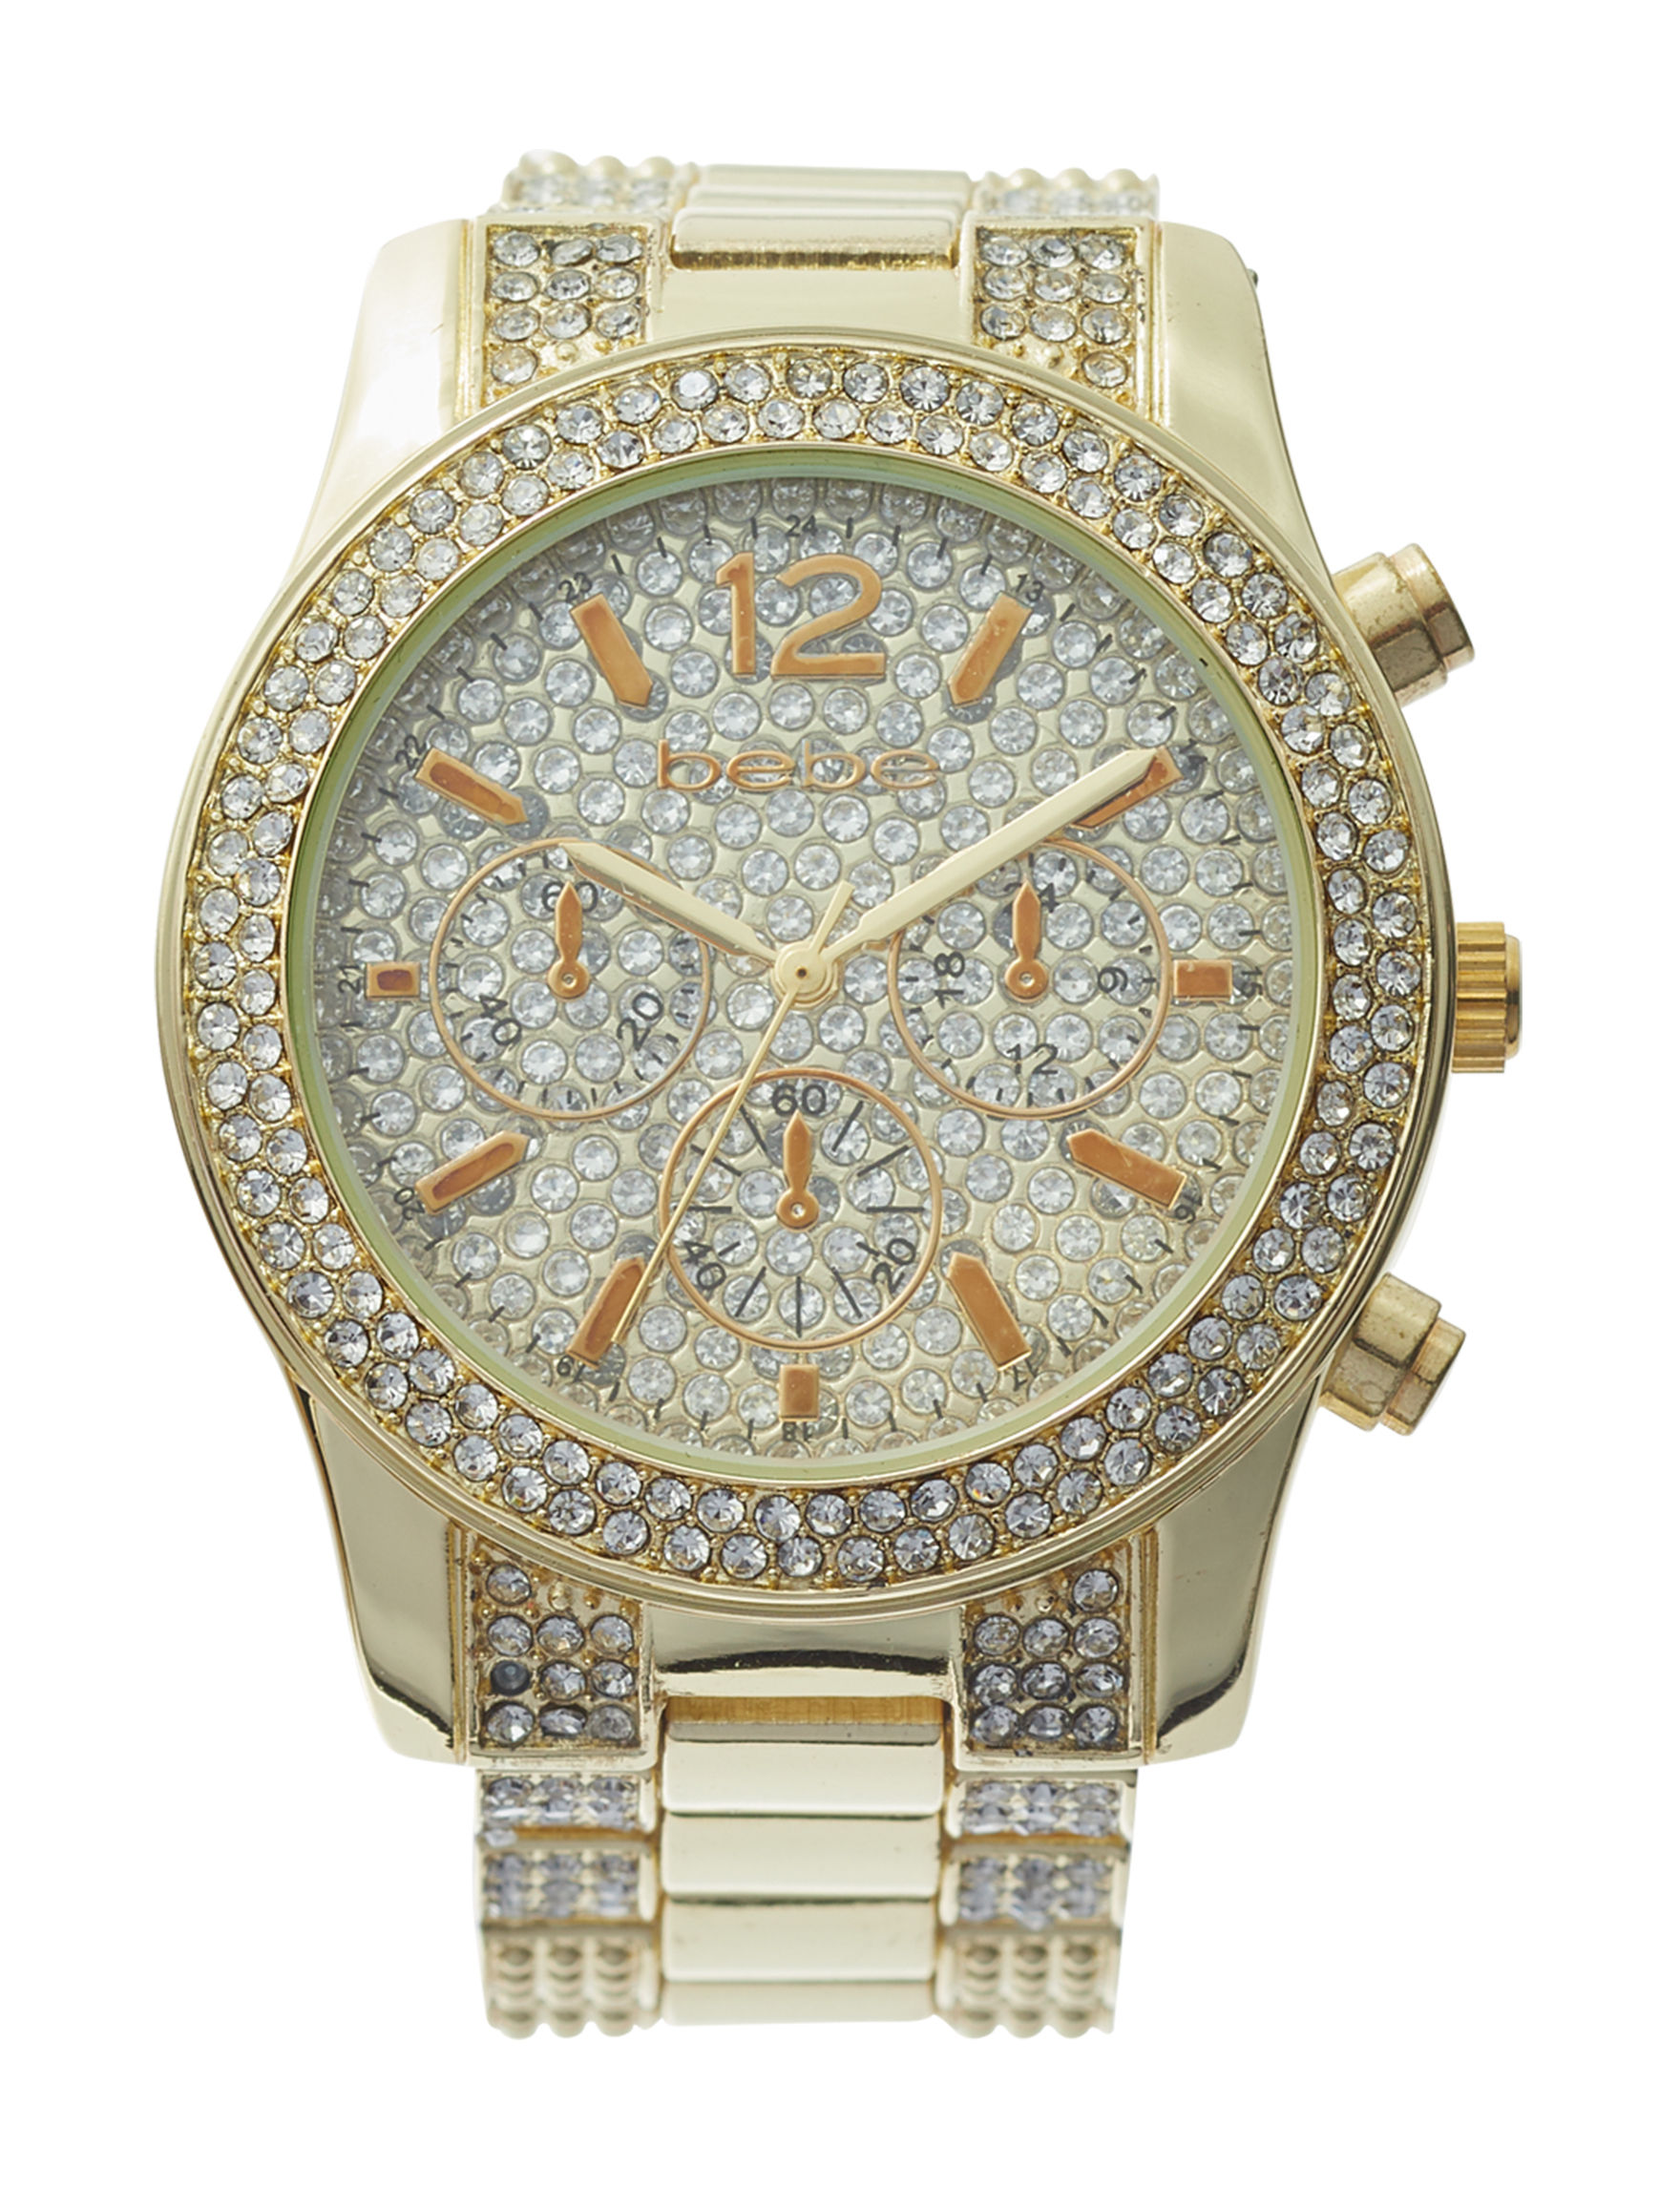 Bebe Gold Fashion Watches